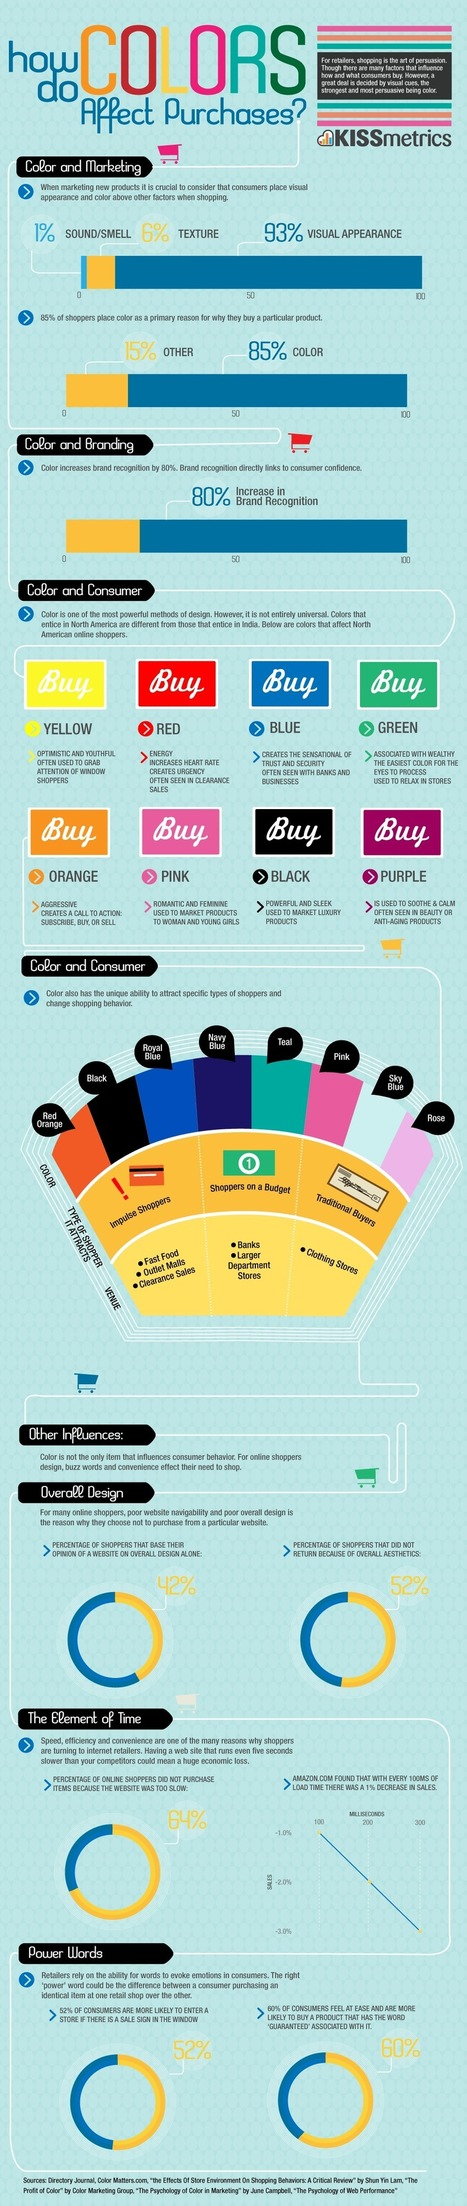 The Role of Color in Marketing [INFOGRAPHIC] | Content Creation, Curation, Management | Scoop.it